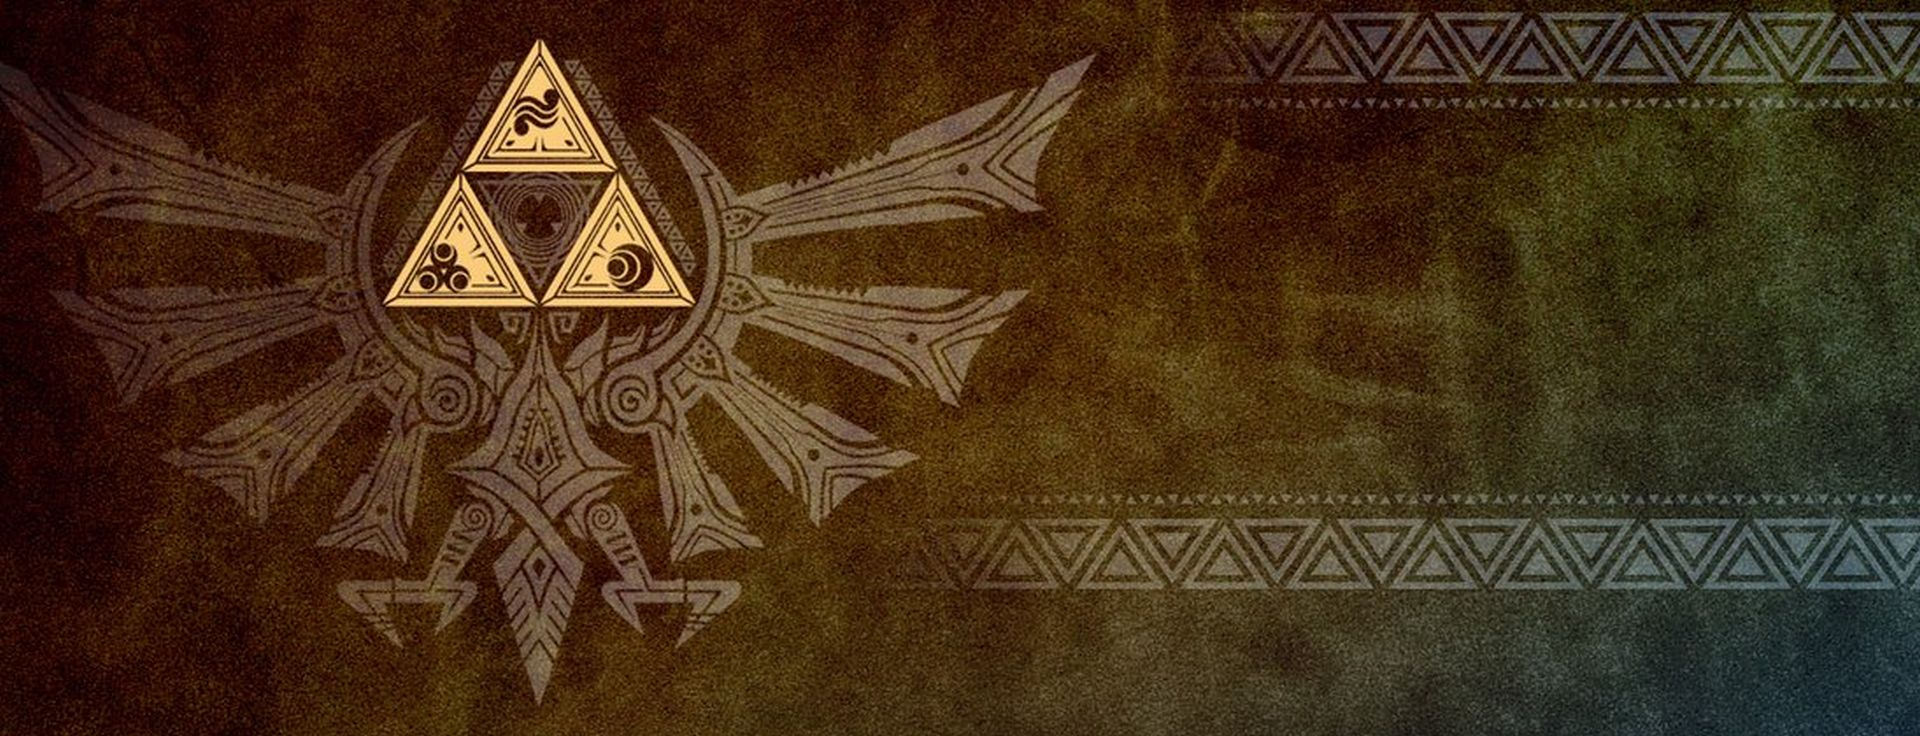 Monolith Soft Seems to Be Working on the Next LEGEND OF